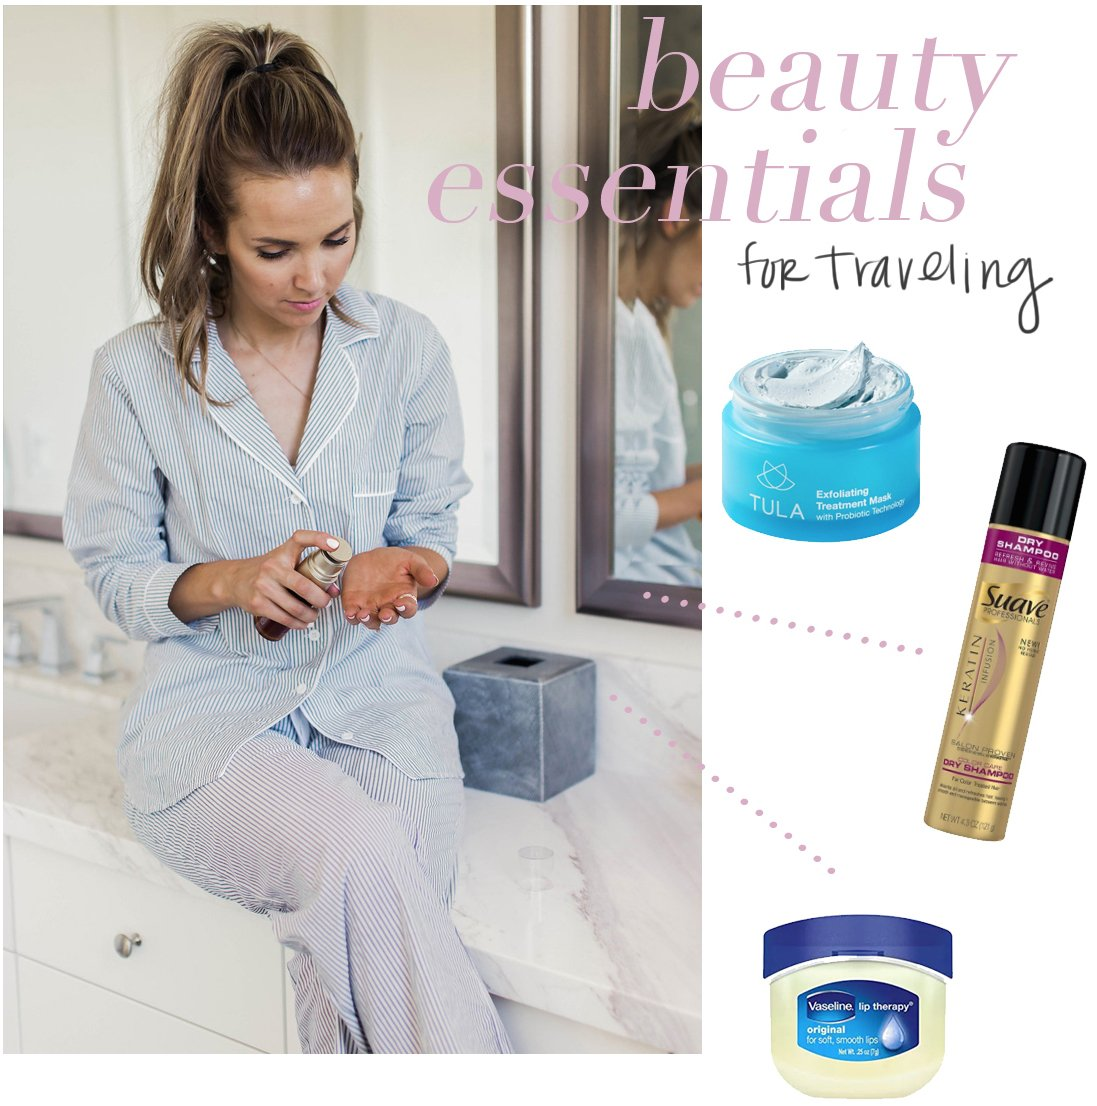 my five beauty essentials for traveling | merricksart.com